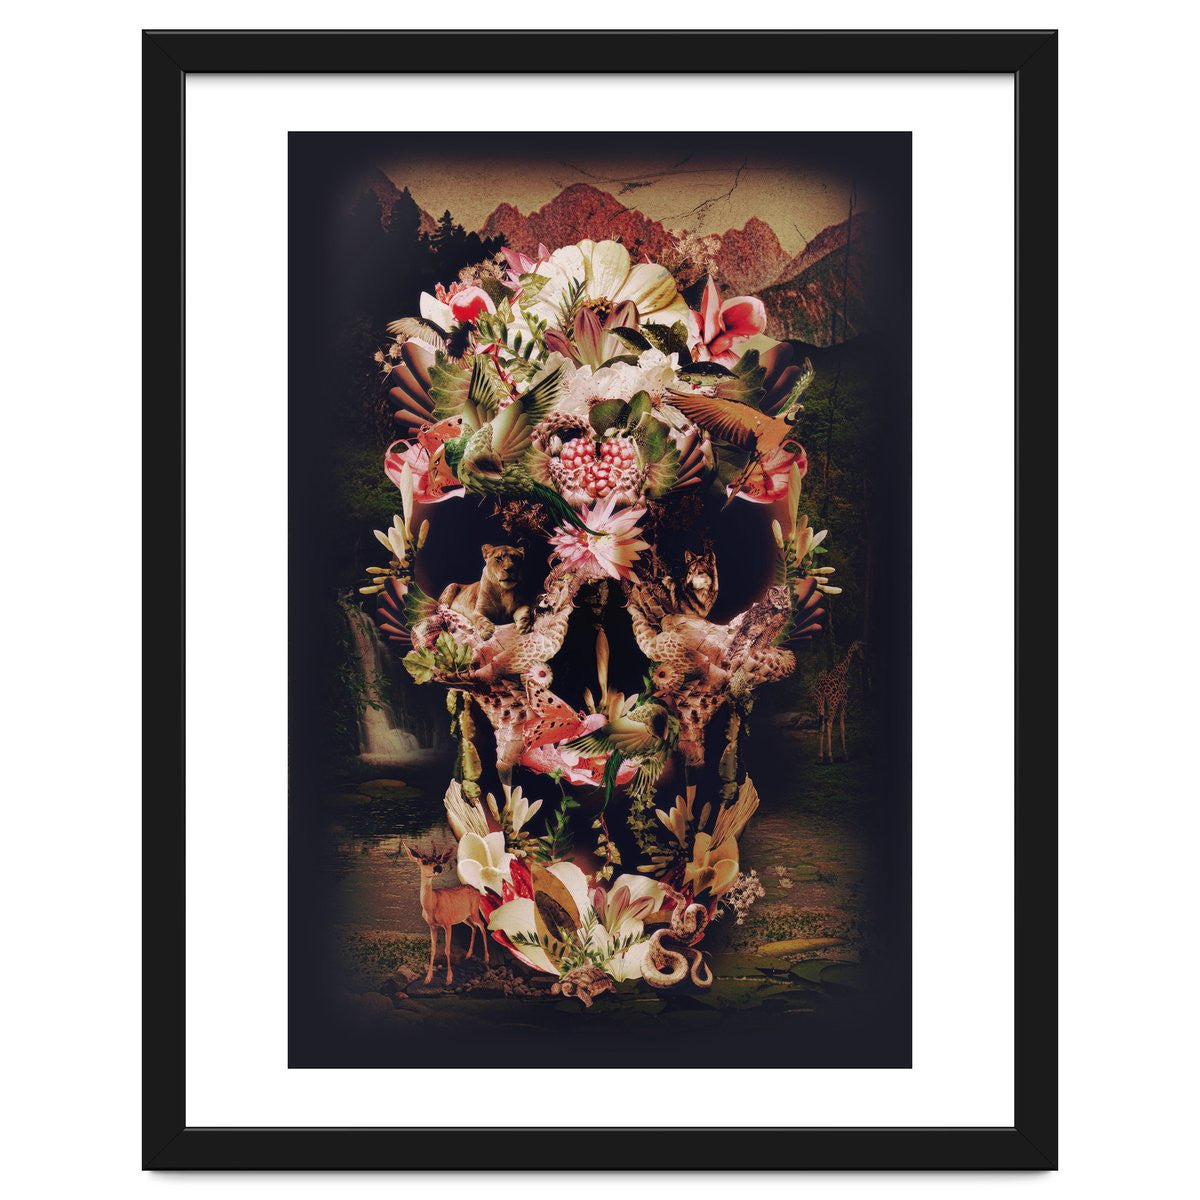 Jungle Skull Framed Artwork by Ali GULEC